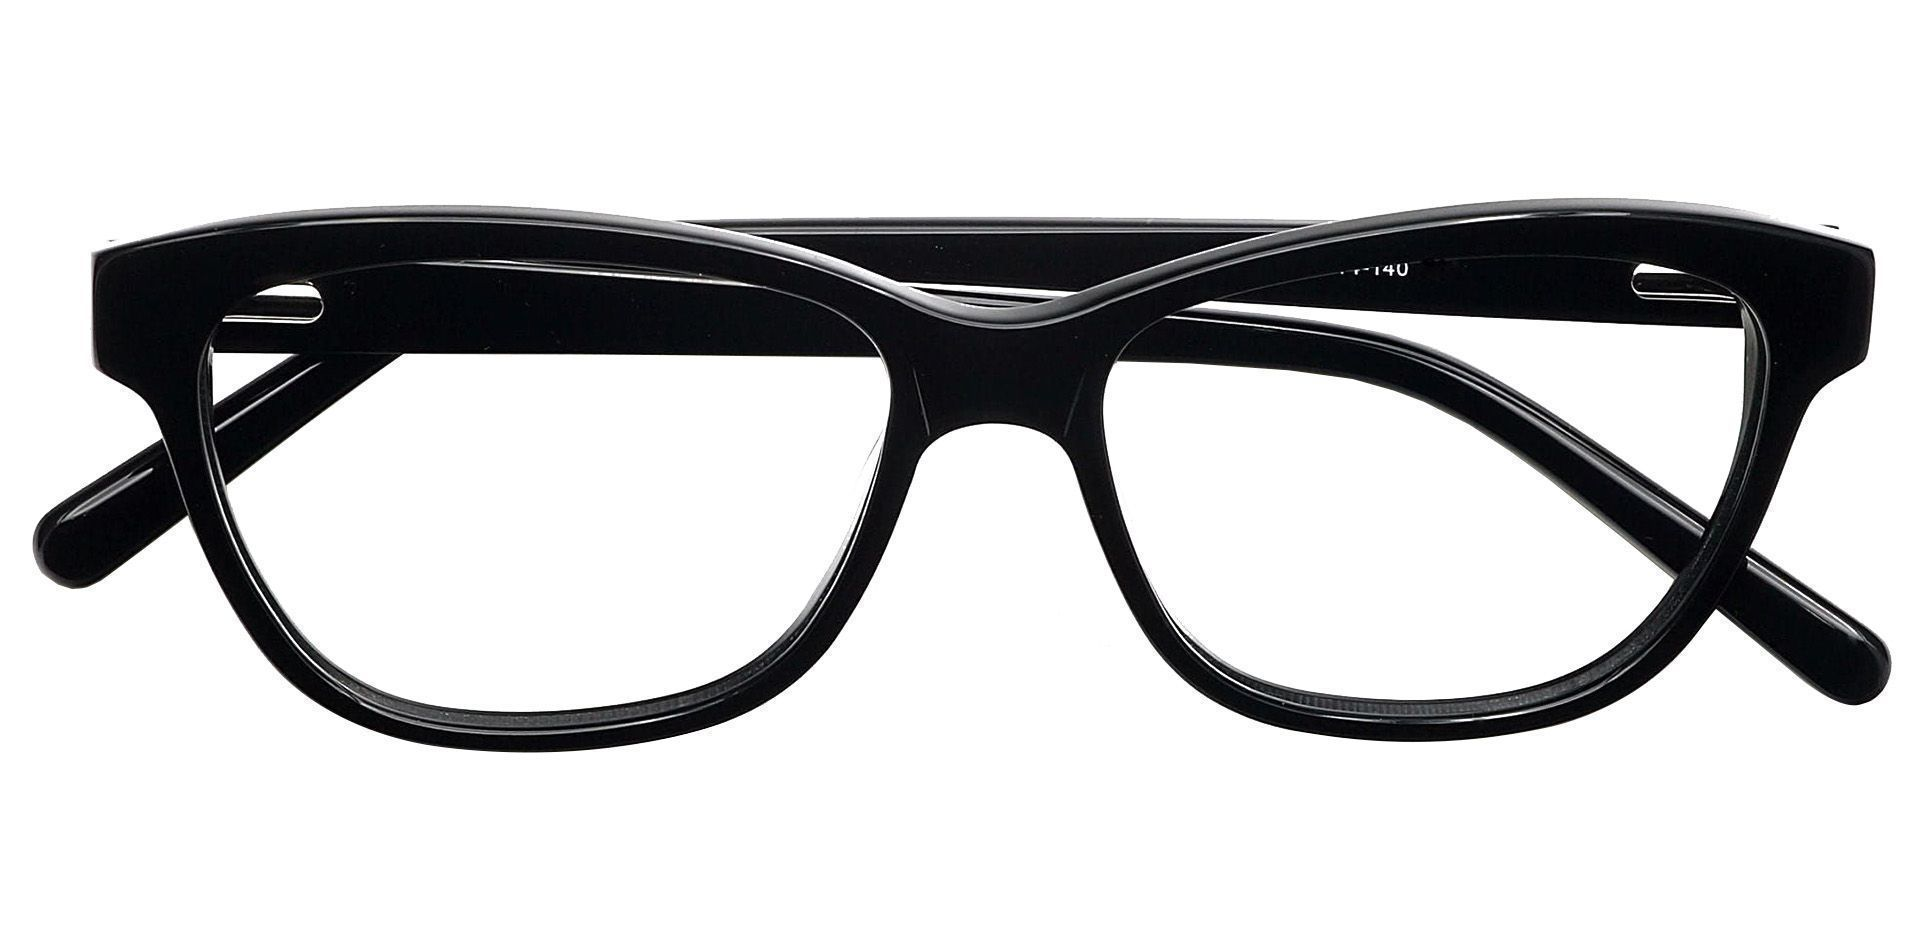 Swell Cat-eye Prescription Glasses - Black